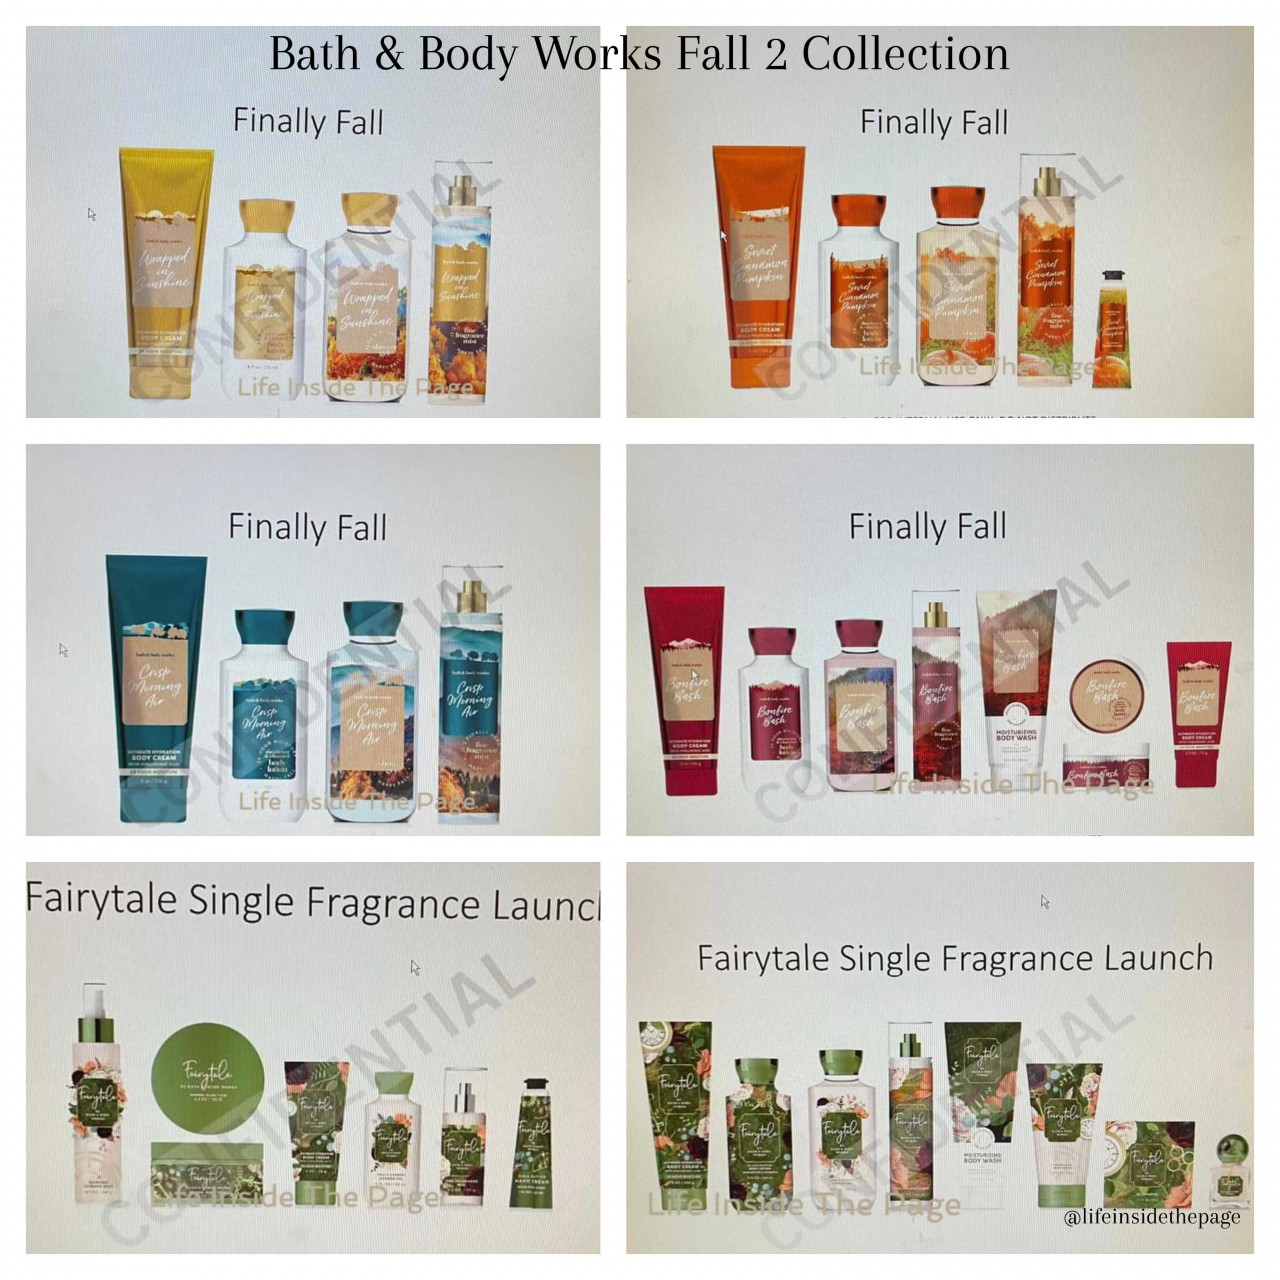 Bath-and-Body-Works-Fall-2-Body-Care